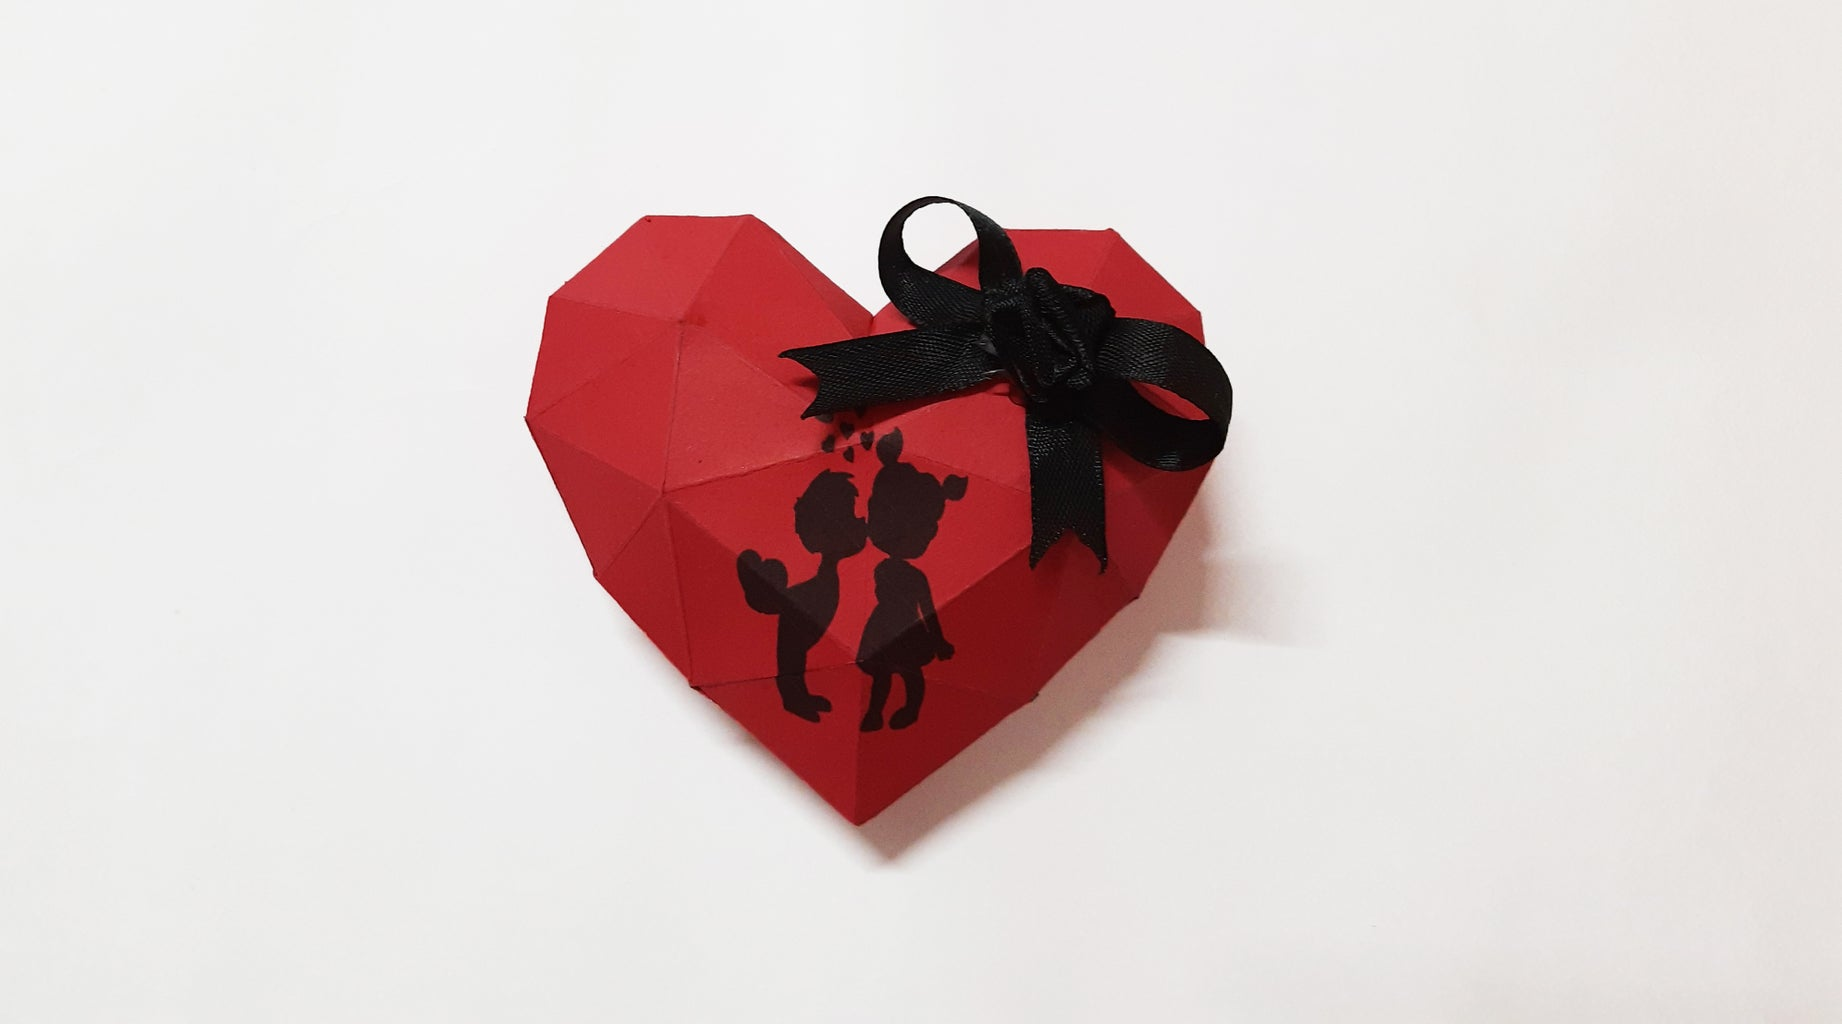 Origami 3D Beating Heart